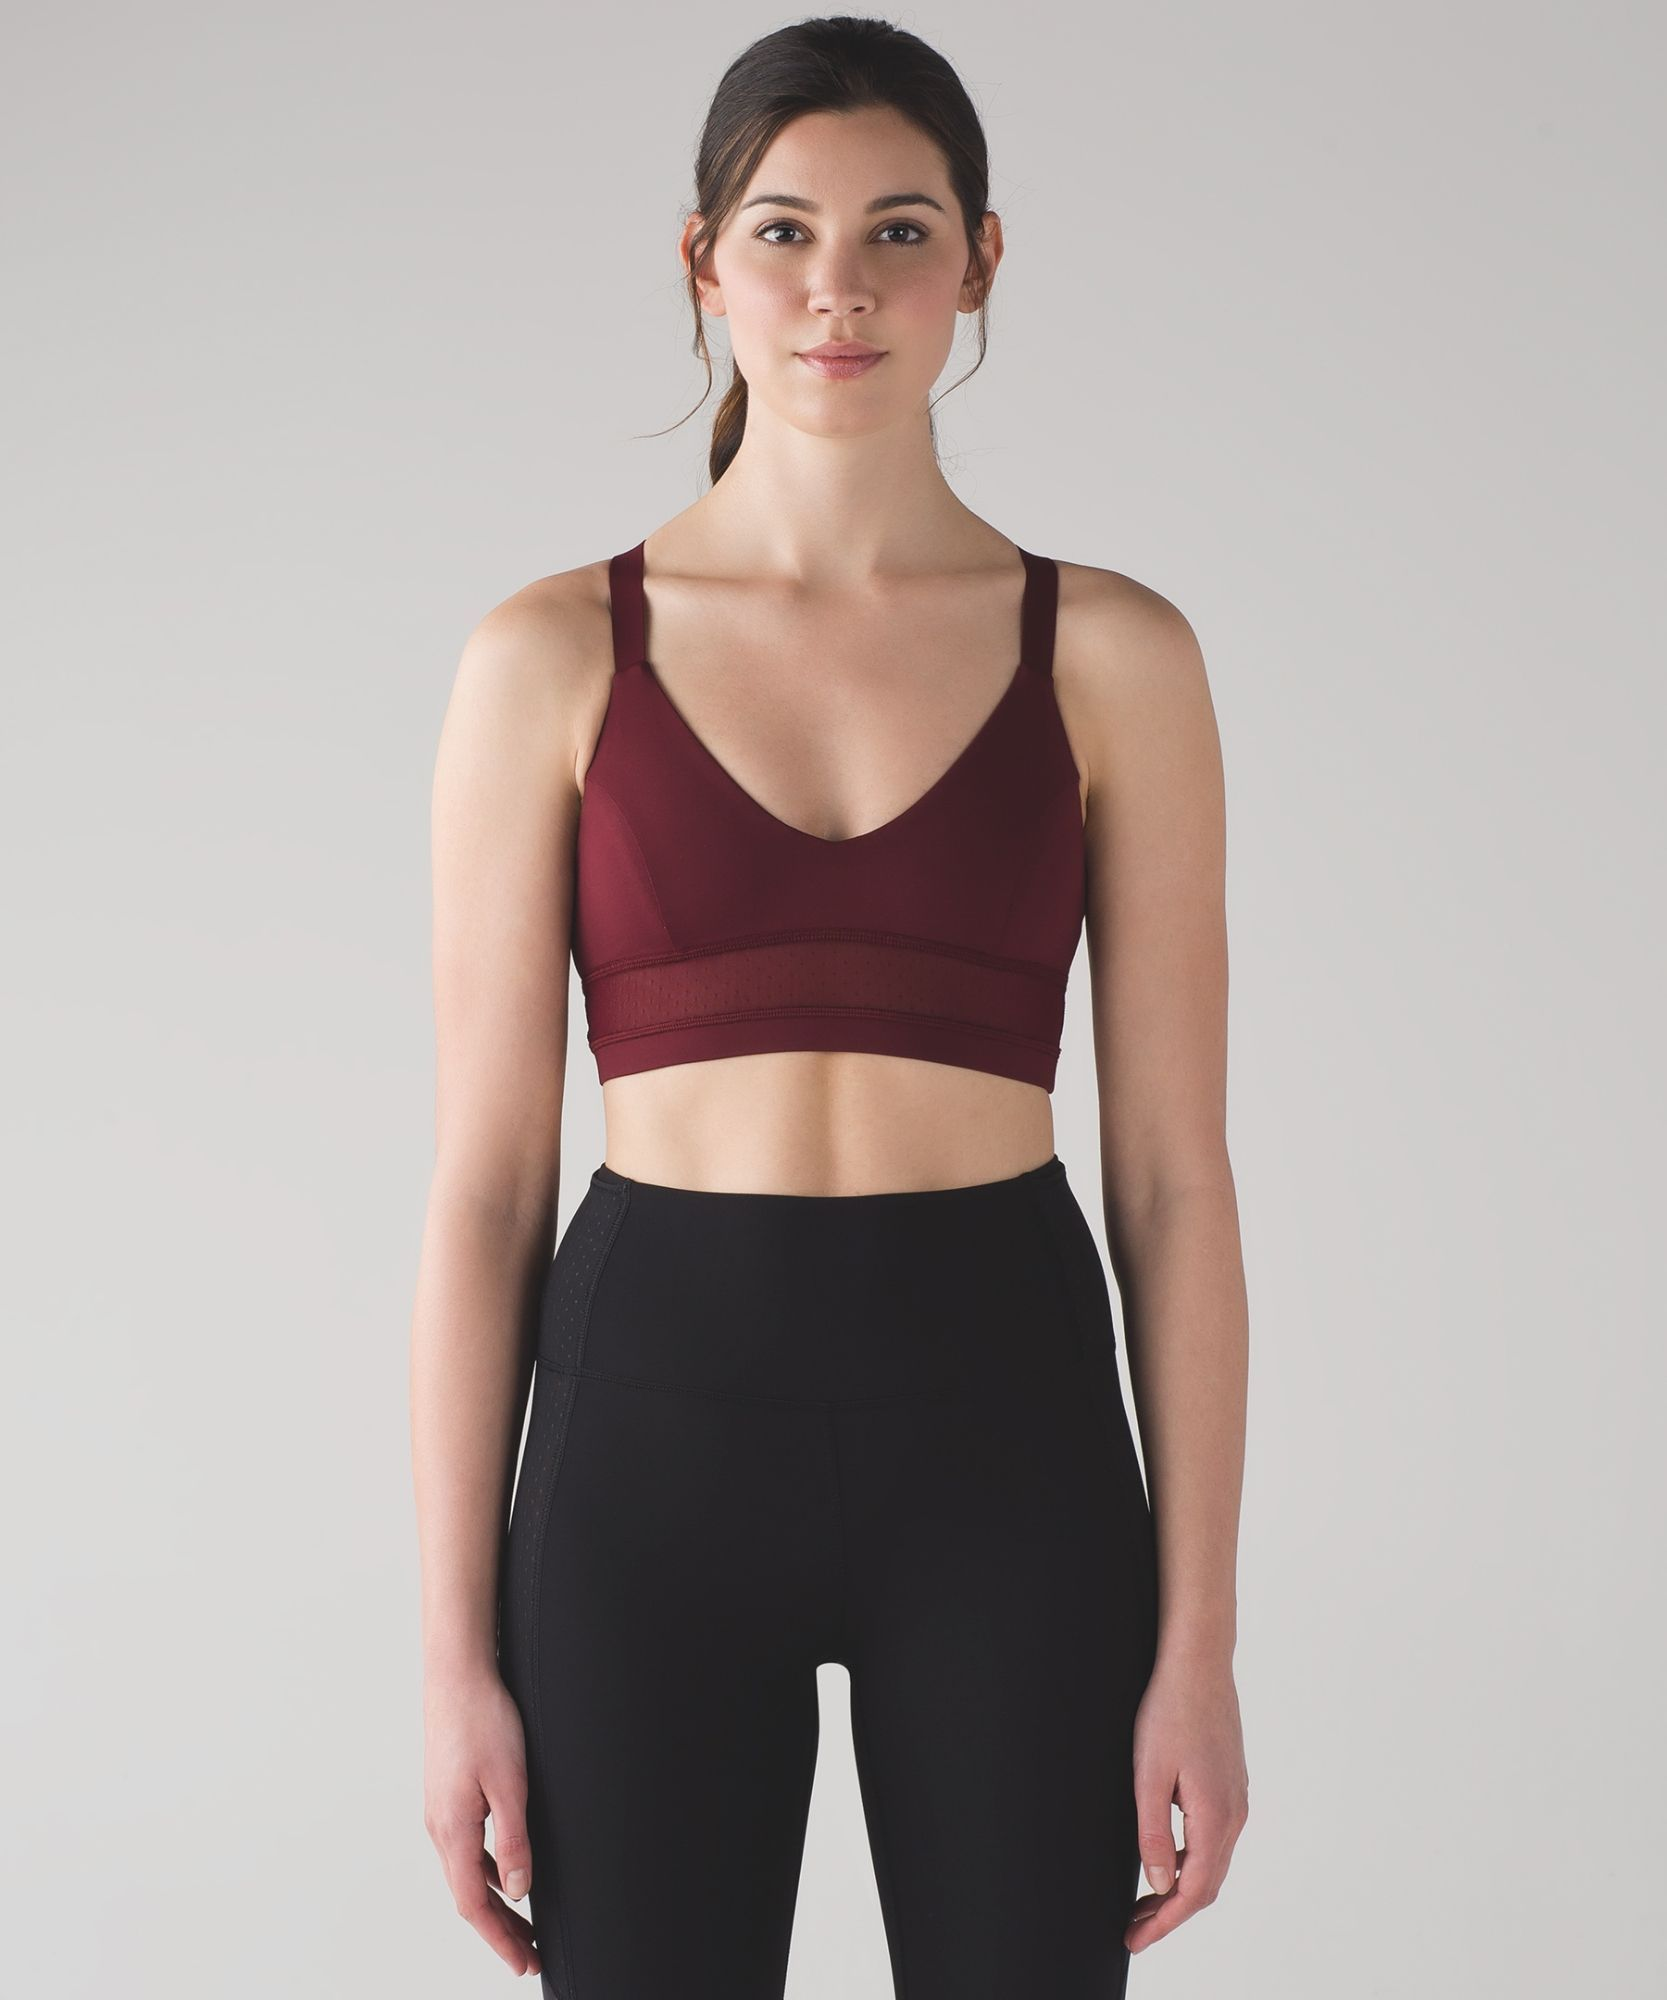 We designed this longline bra with breathable Mesh fabric